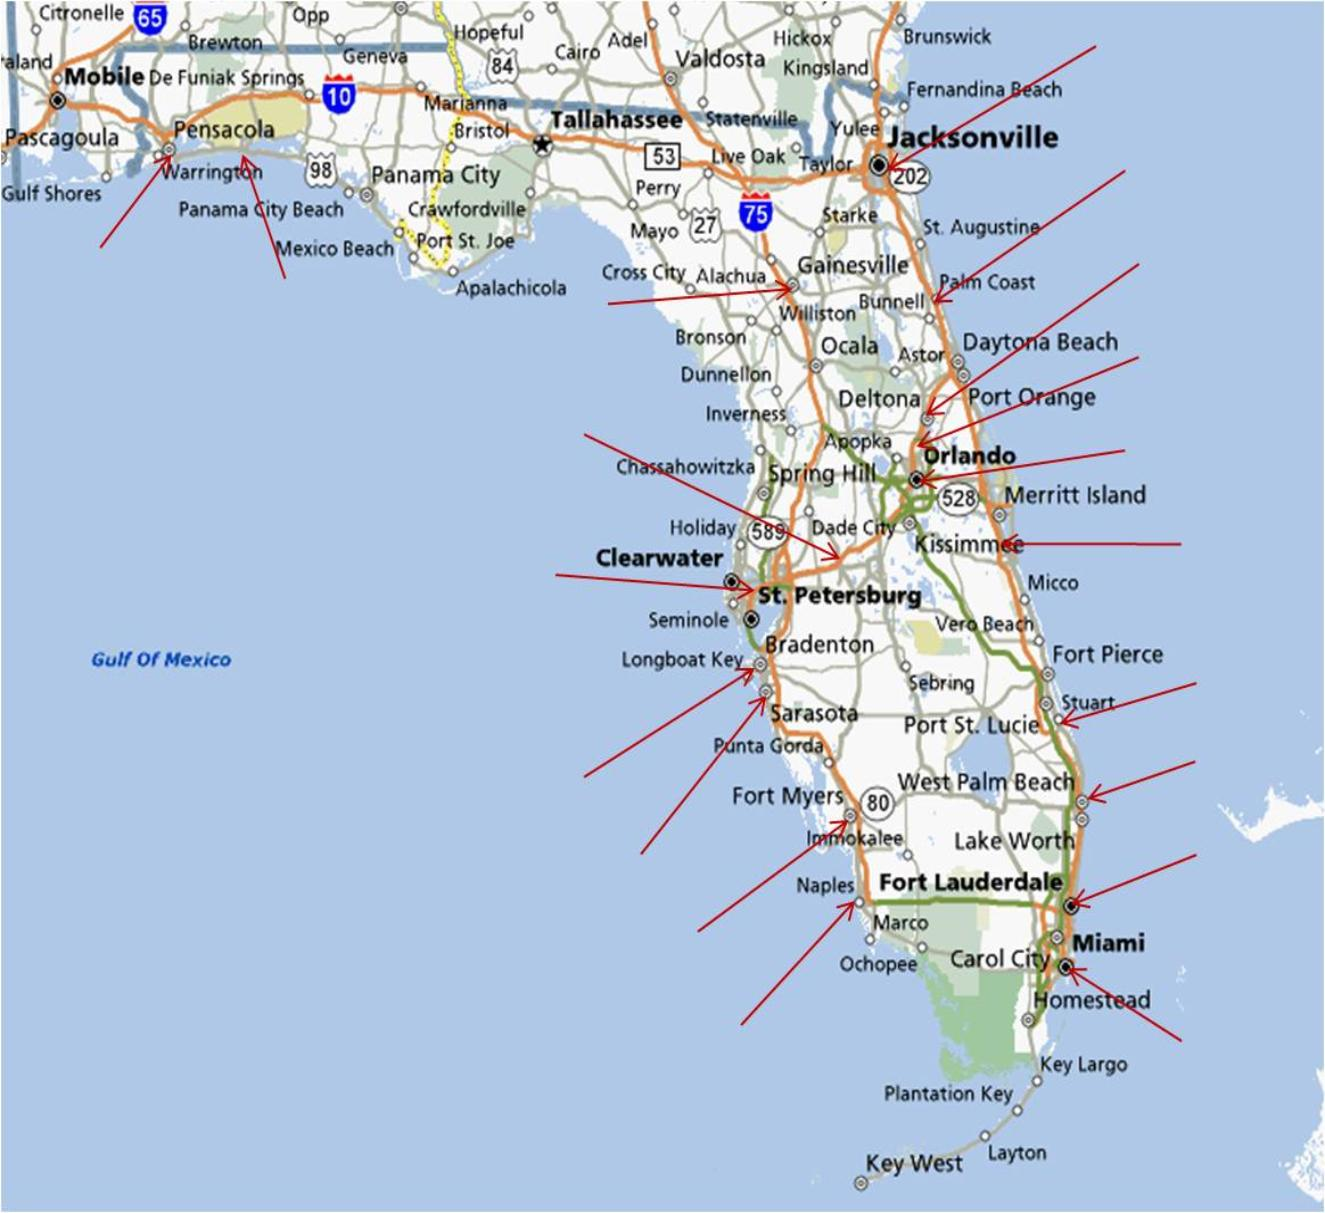 Google Map Cocoa Beach Map Get Free Image About World Maps - Florida map beach